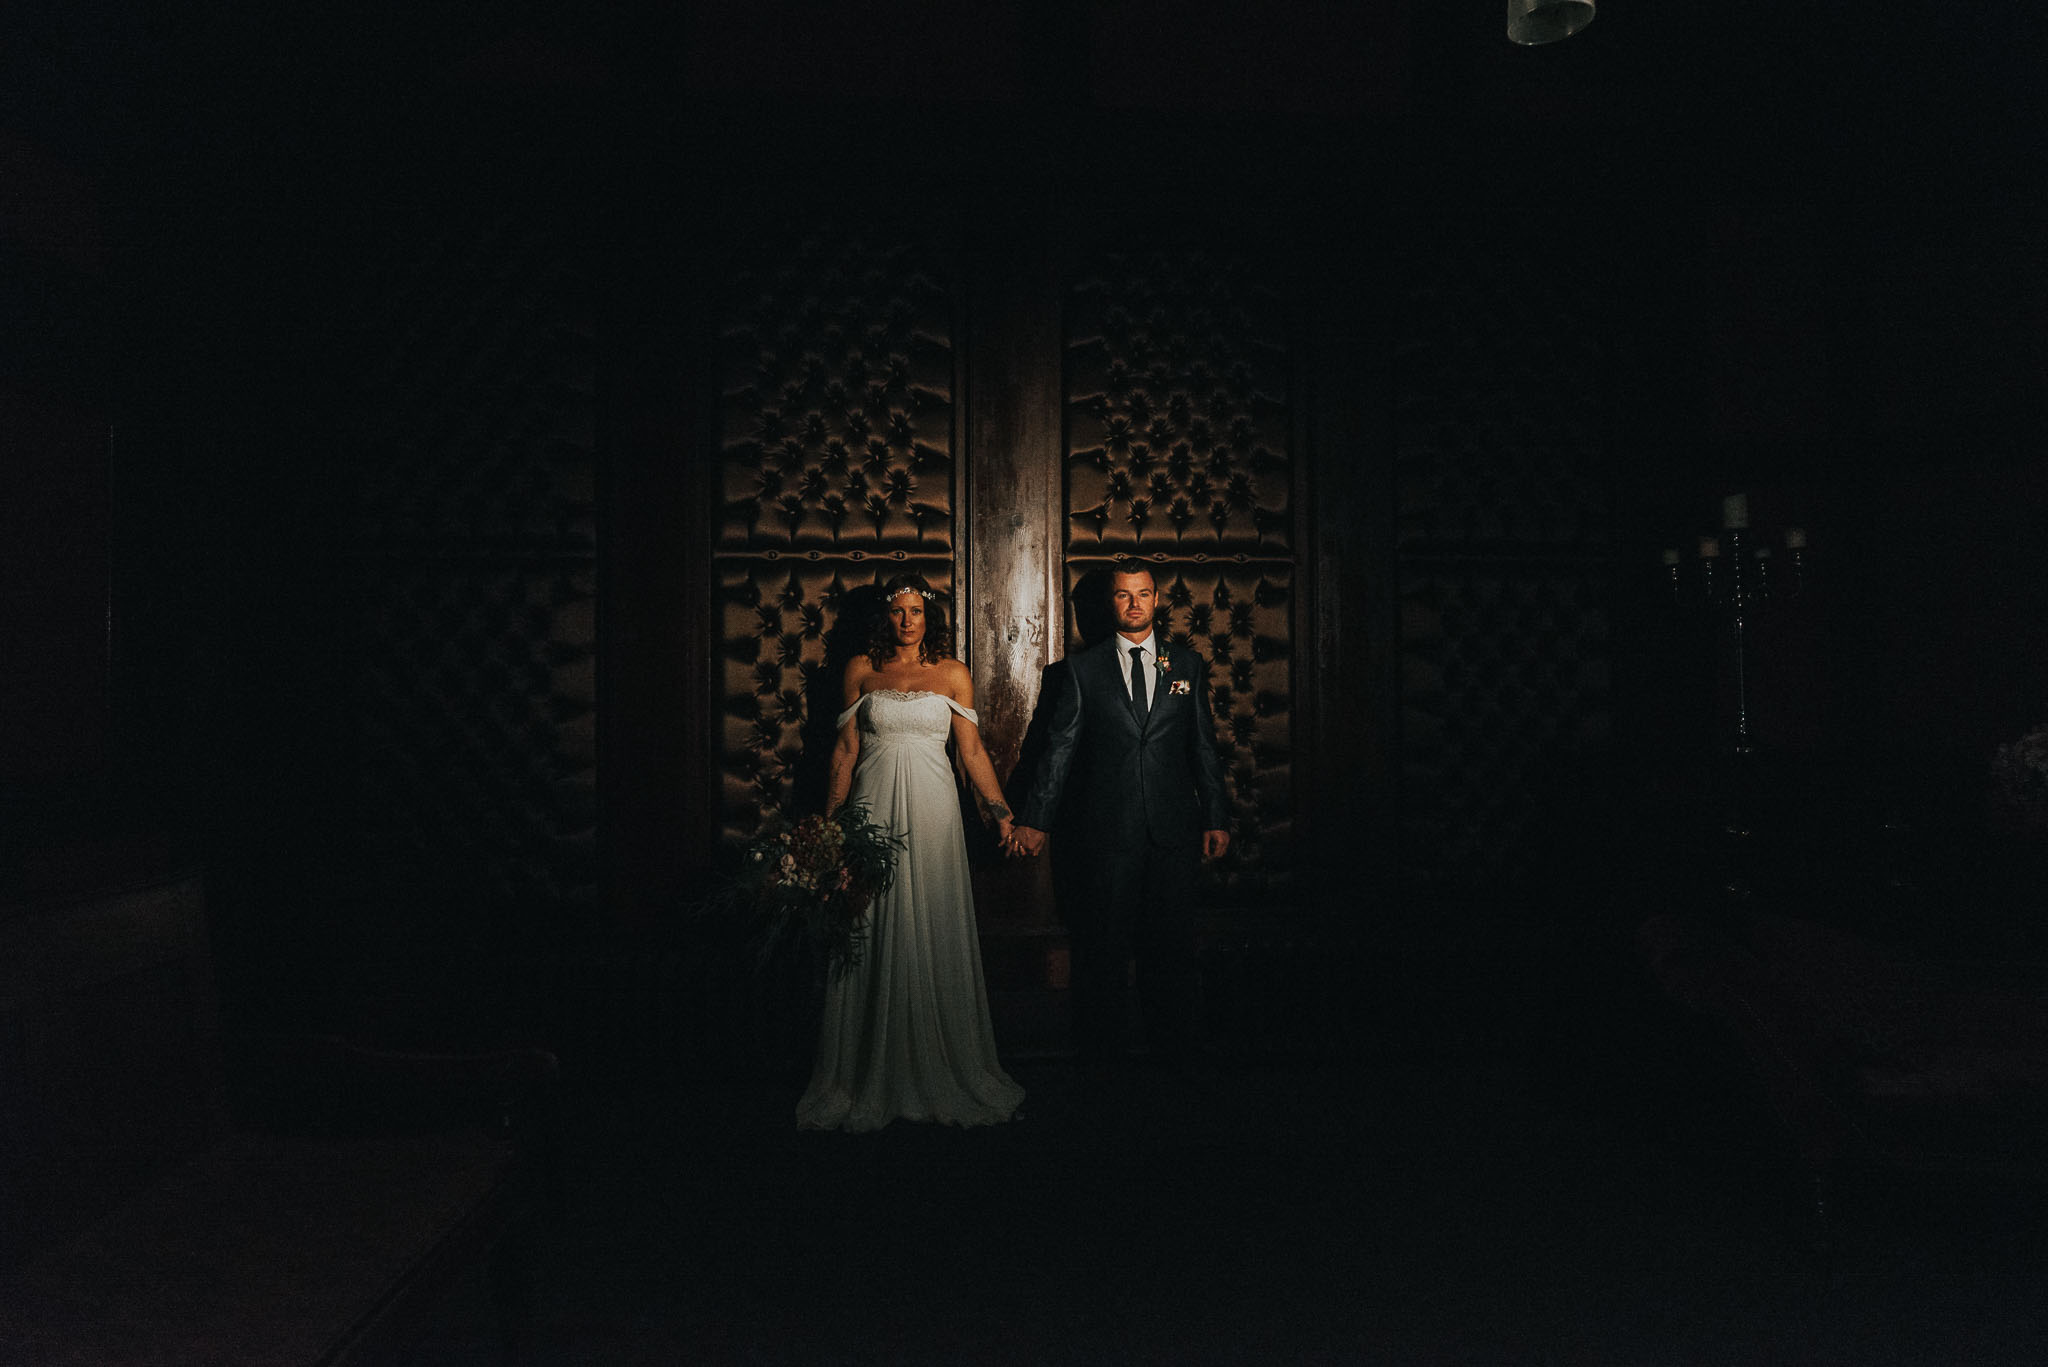 dramatic ceremony image of bride and groom in belle époque in Manchester for their dramatic and moody winter wedding